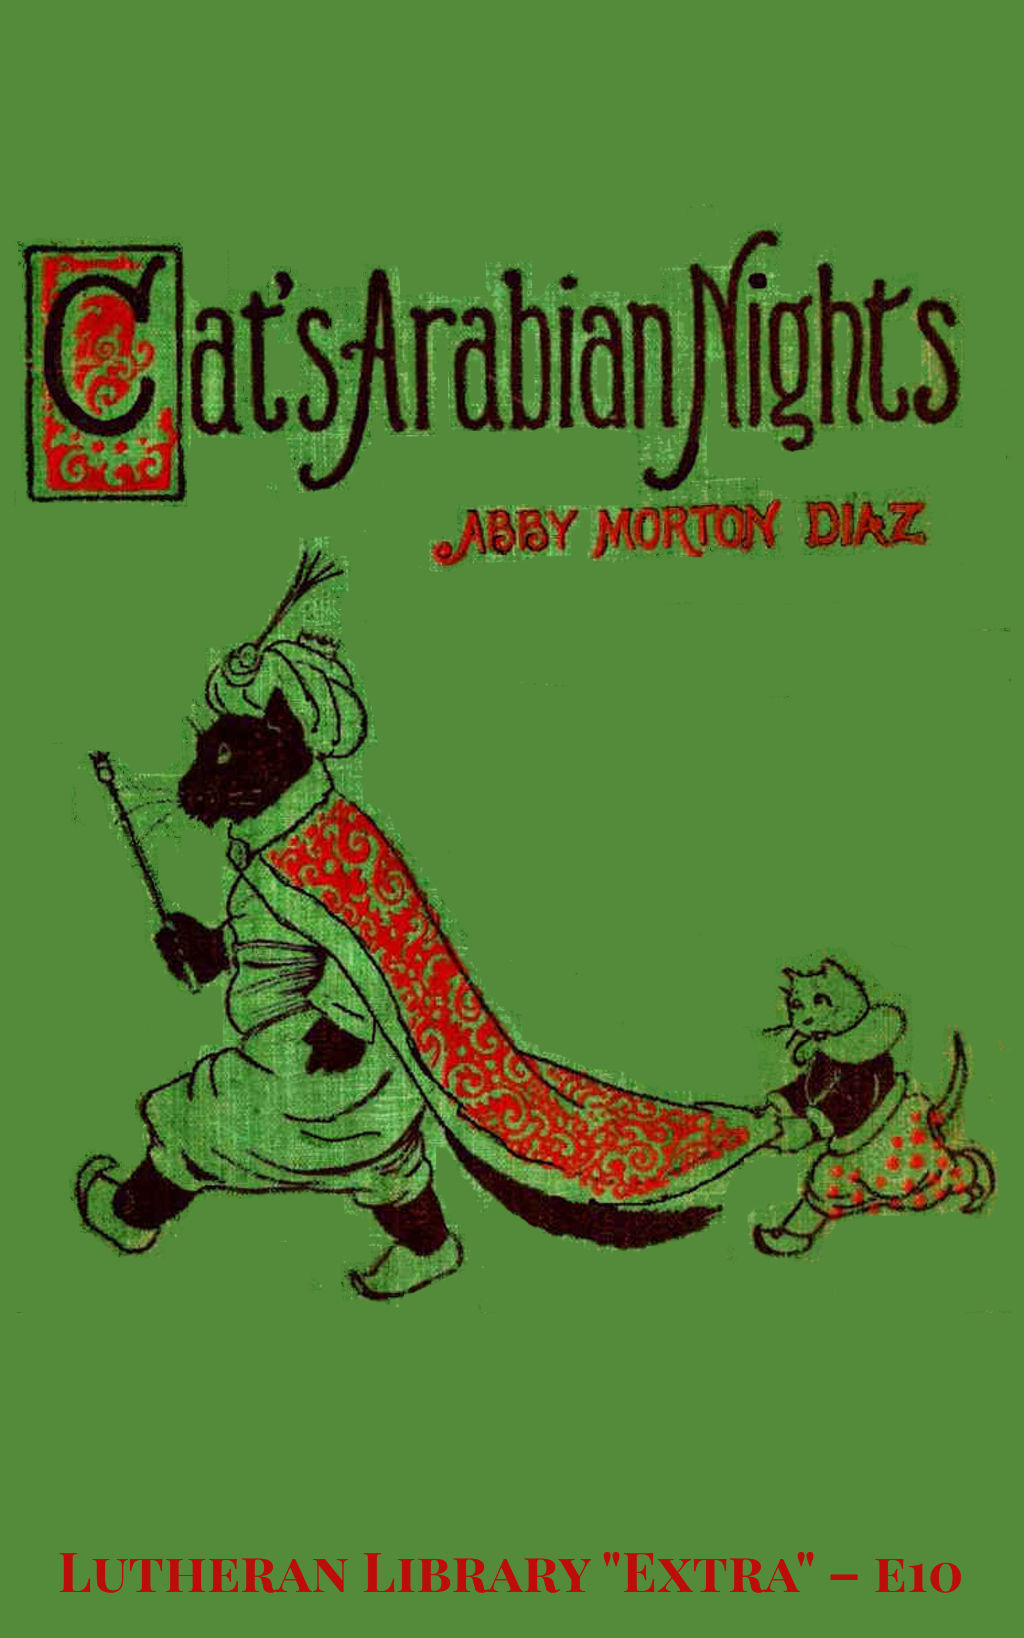 King Grimalkum or The Cats' Arabian Nights by Abby Morton Diaz